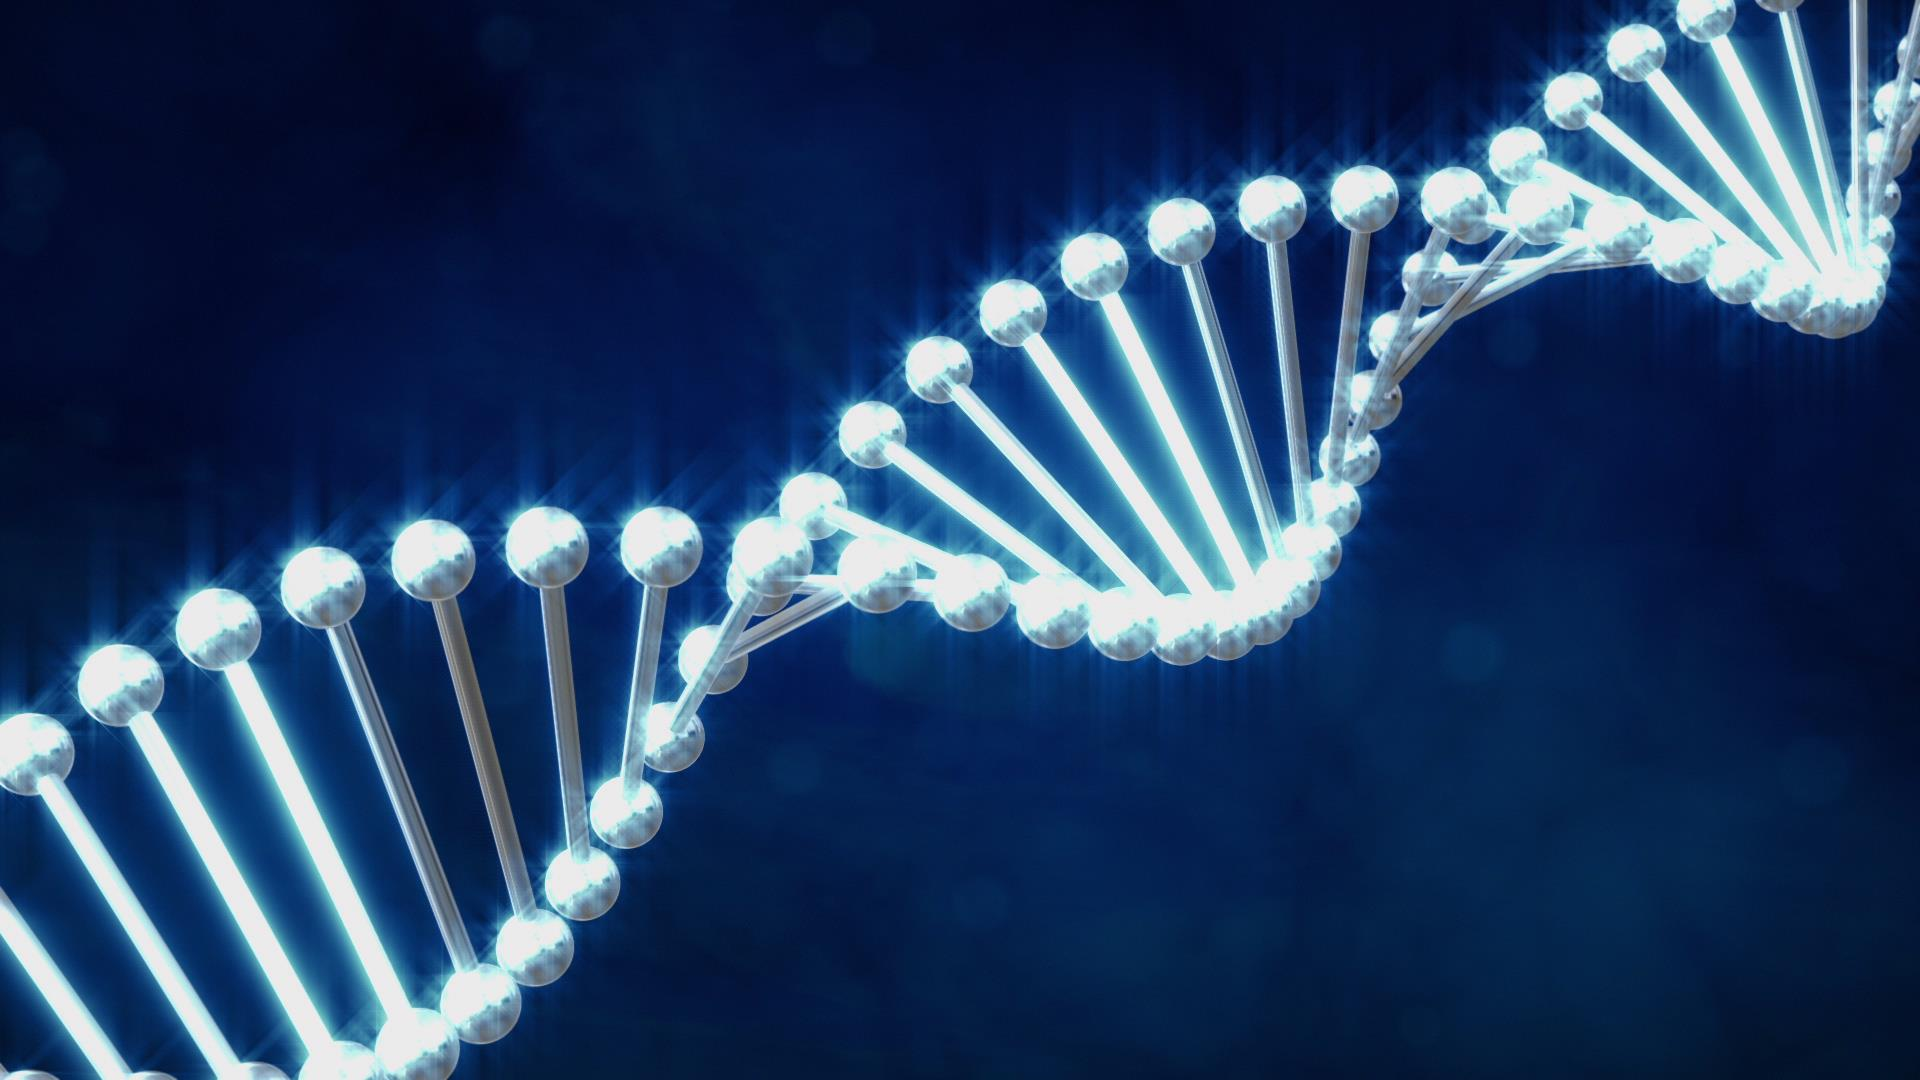 11 Amazing Feats the Gene-Editing Tool CRISPR Just Made Possible